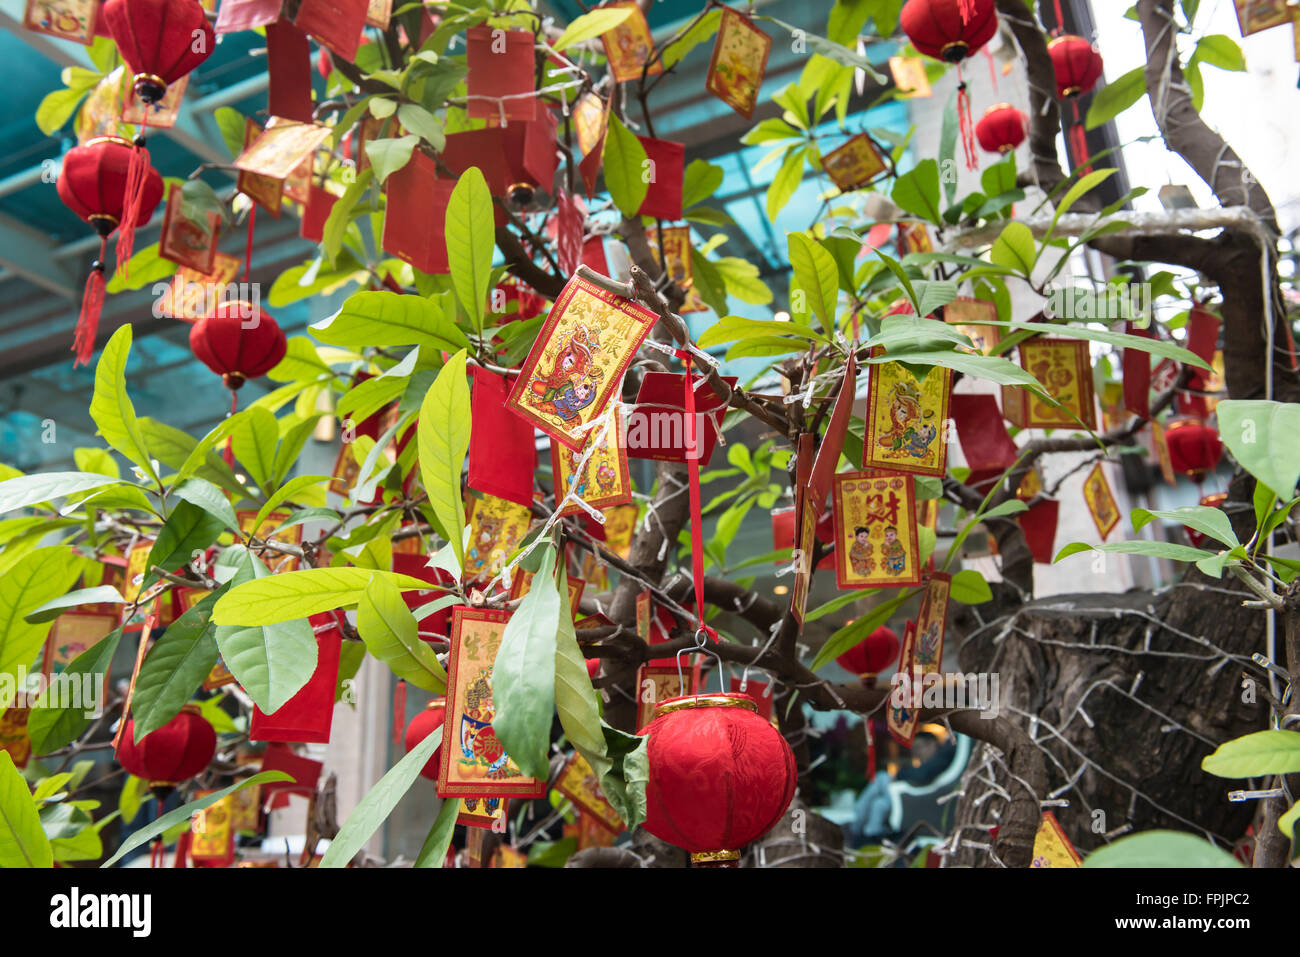 HO CHI MINH, VIETNAM - JANUARY 27, 2016: Decorated tree for Tet, the Vietnamese New Year which takes place on February Stock Photo